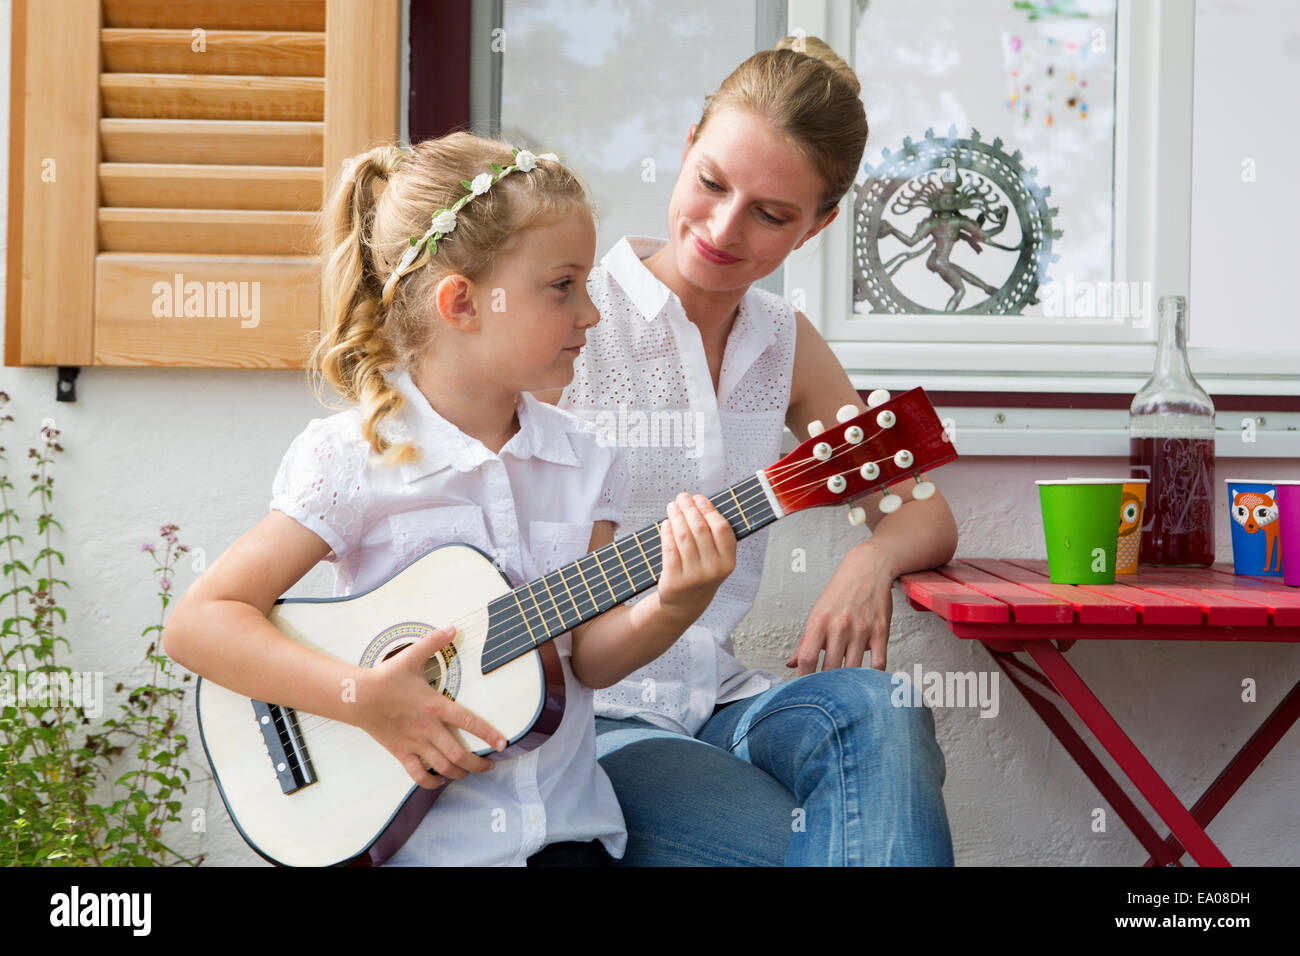 Girl playing guitar with mother - Stock Image